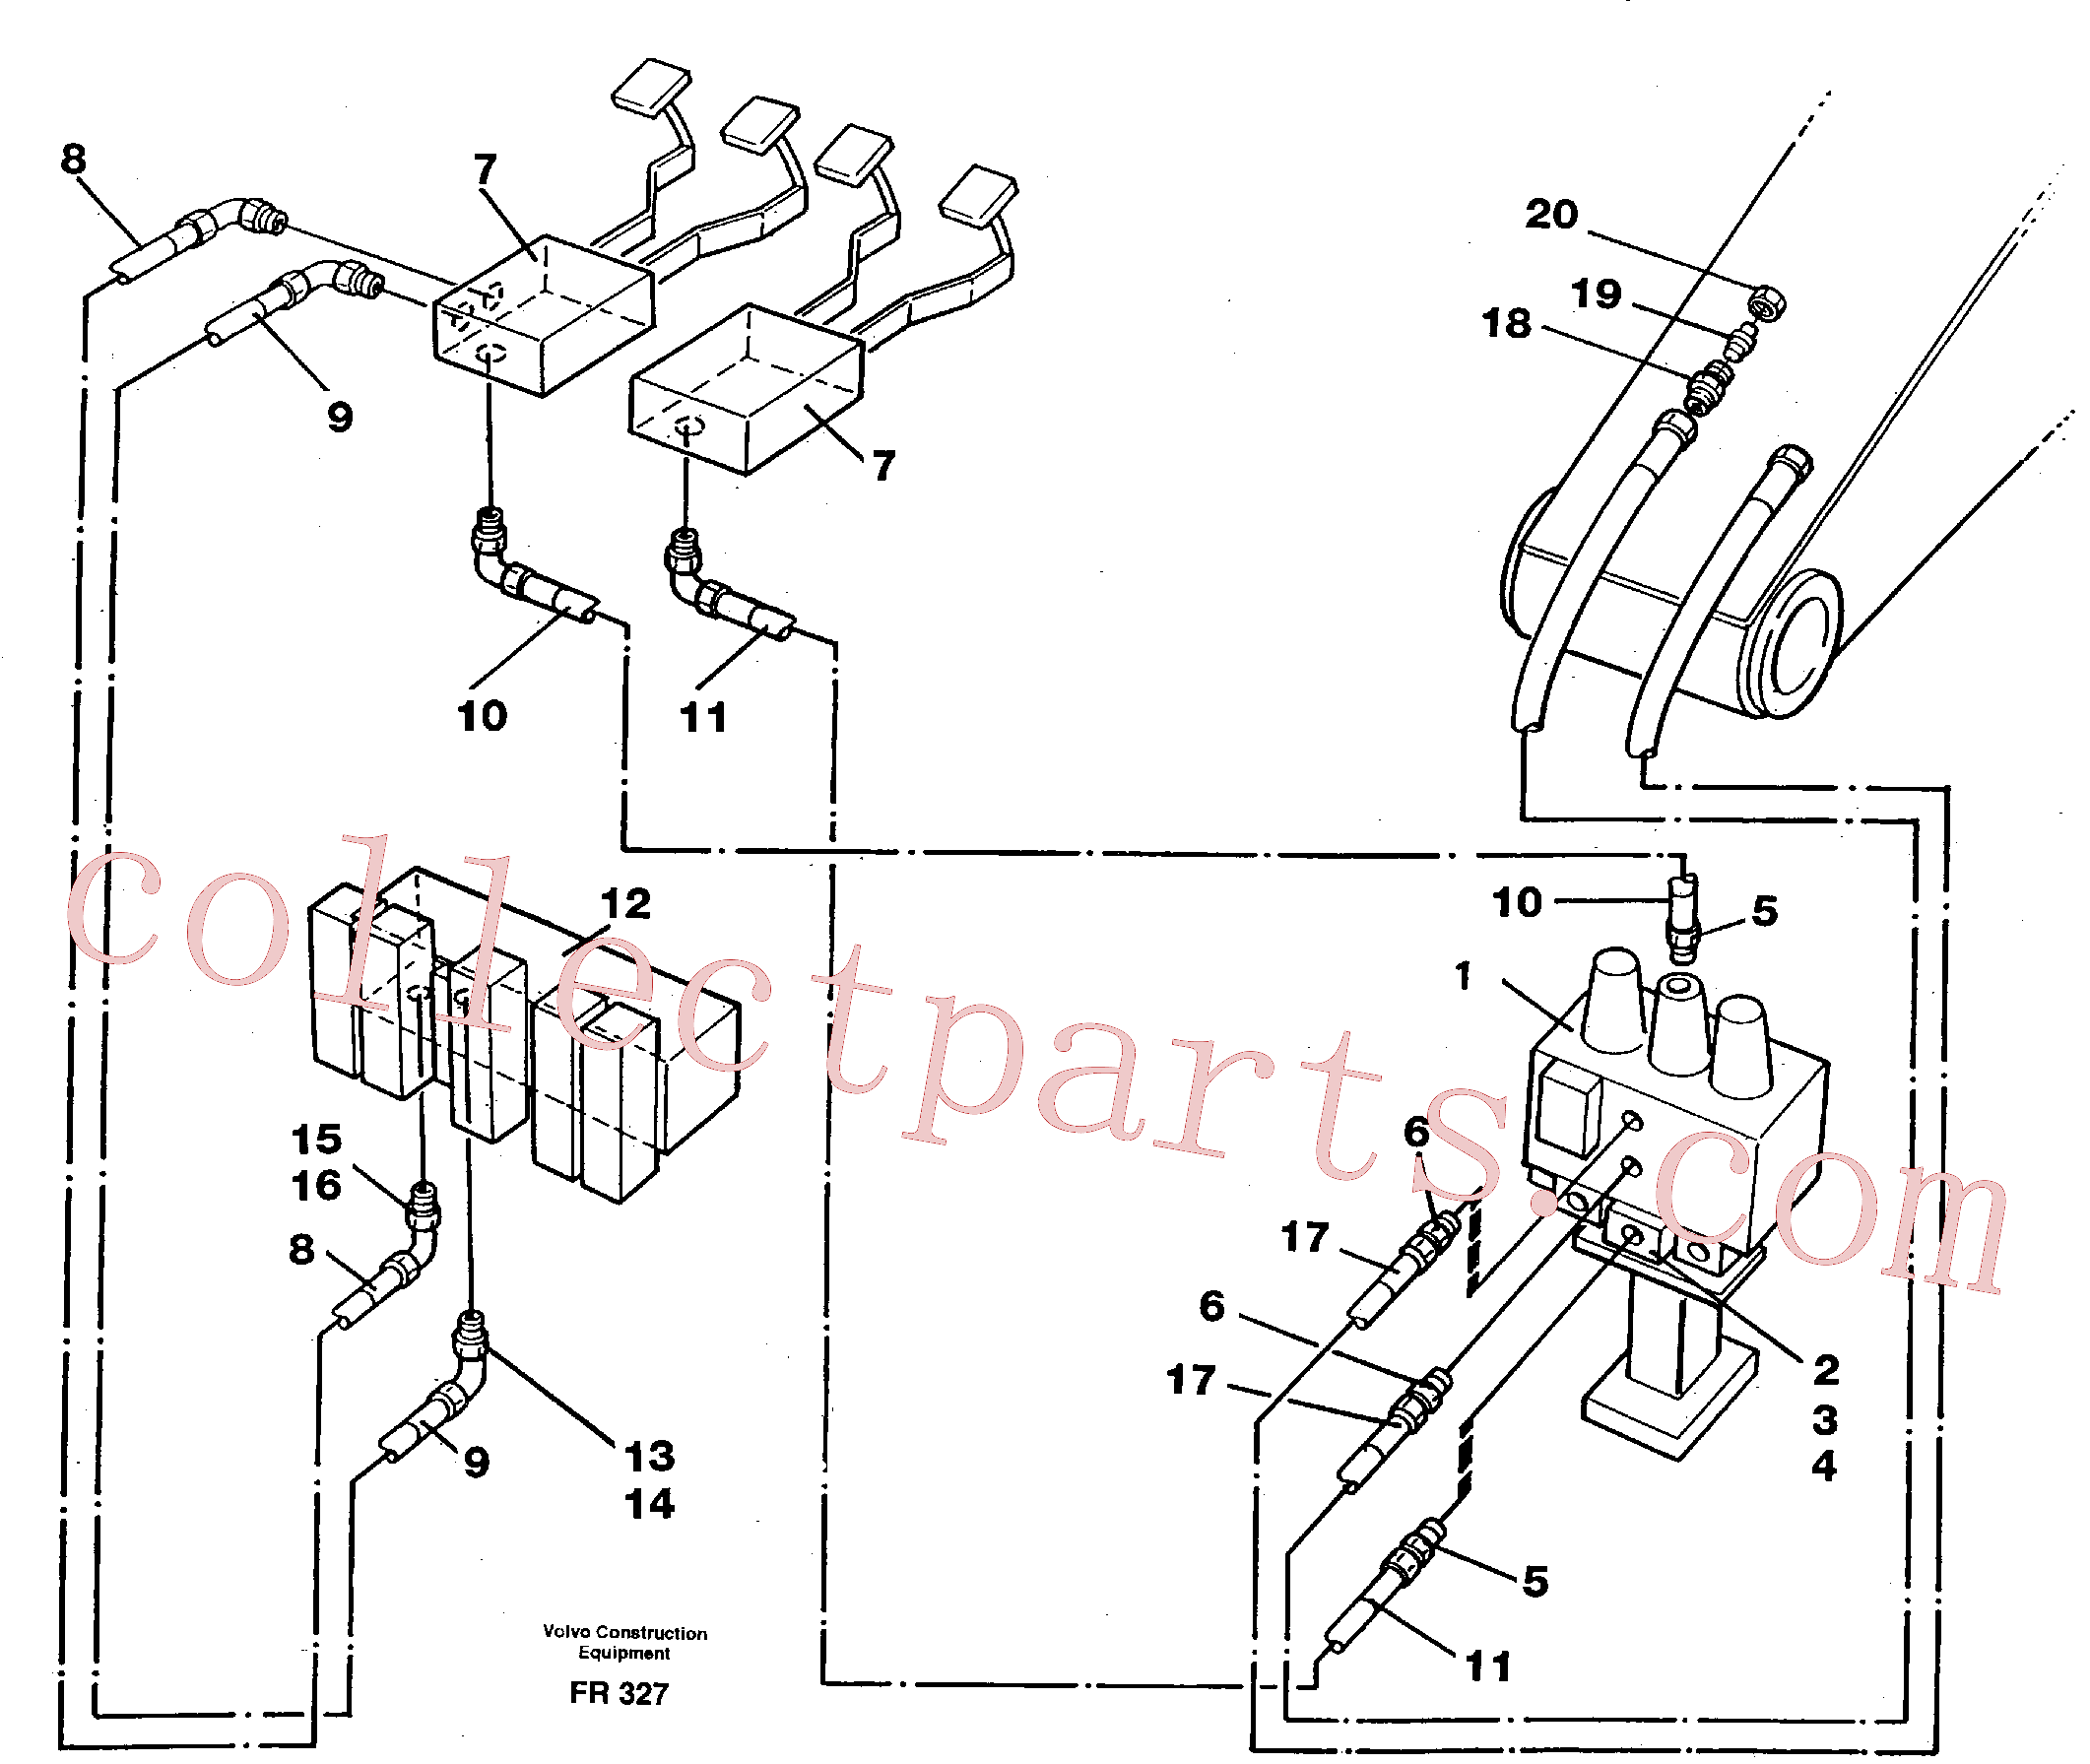 VOE14250306 for Volvo Slope bucket/rotator equipment for mono-boom in base machine(FR327 assembly)